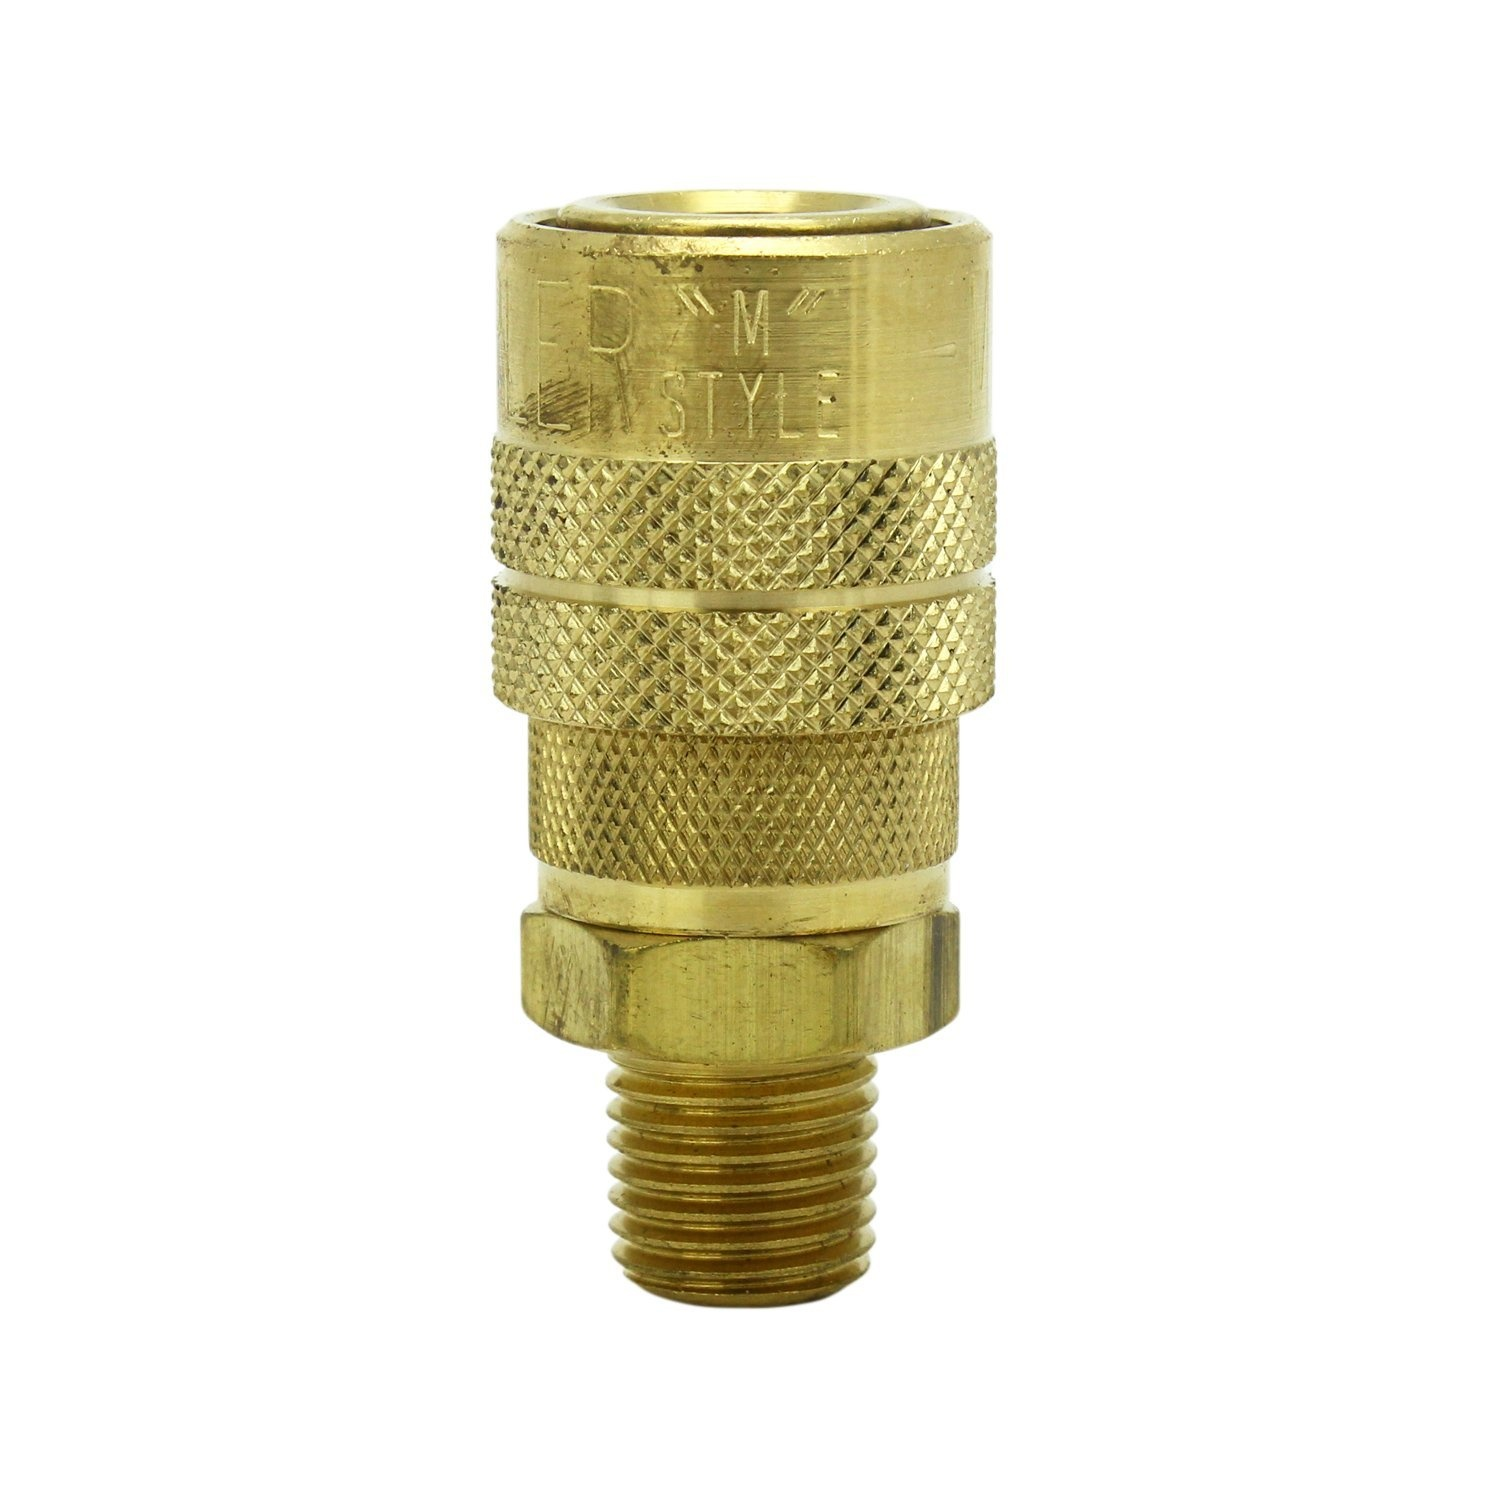 14 Male NPT M Style Milton Air fitting Quick Connect